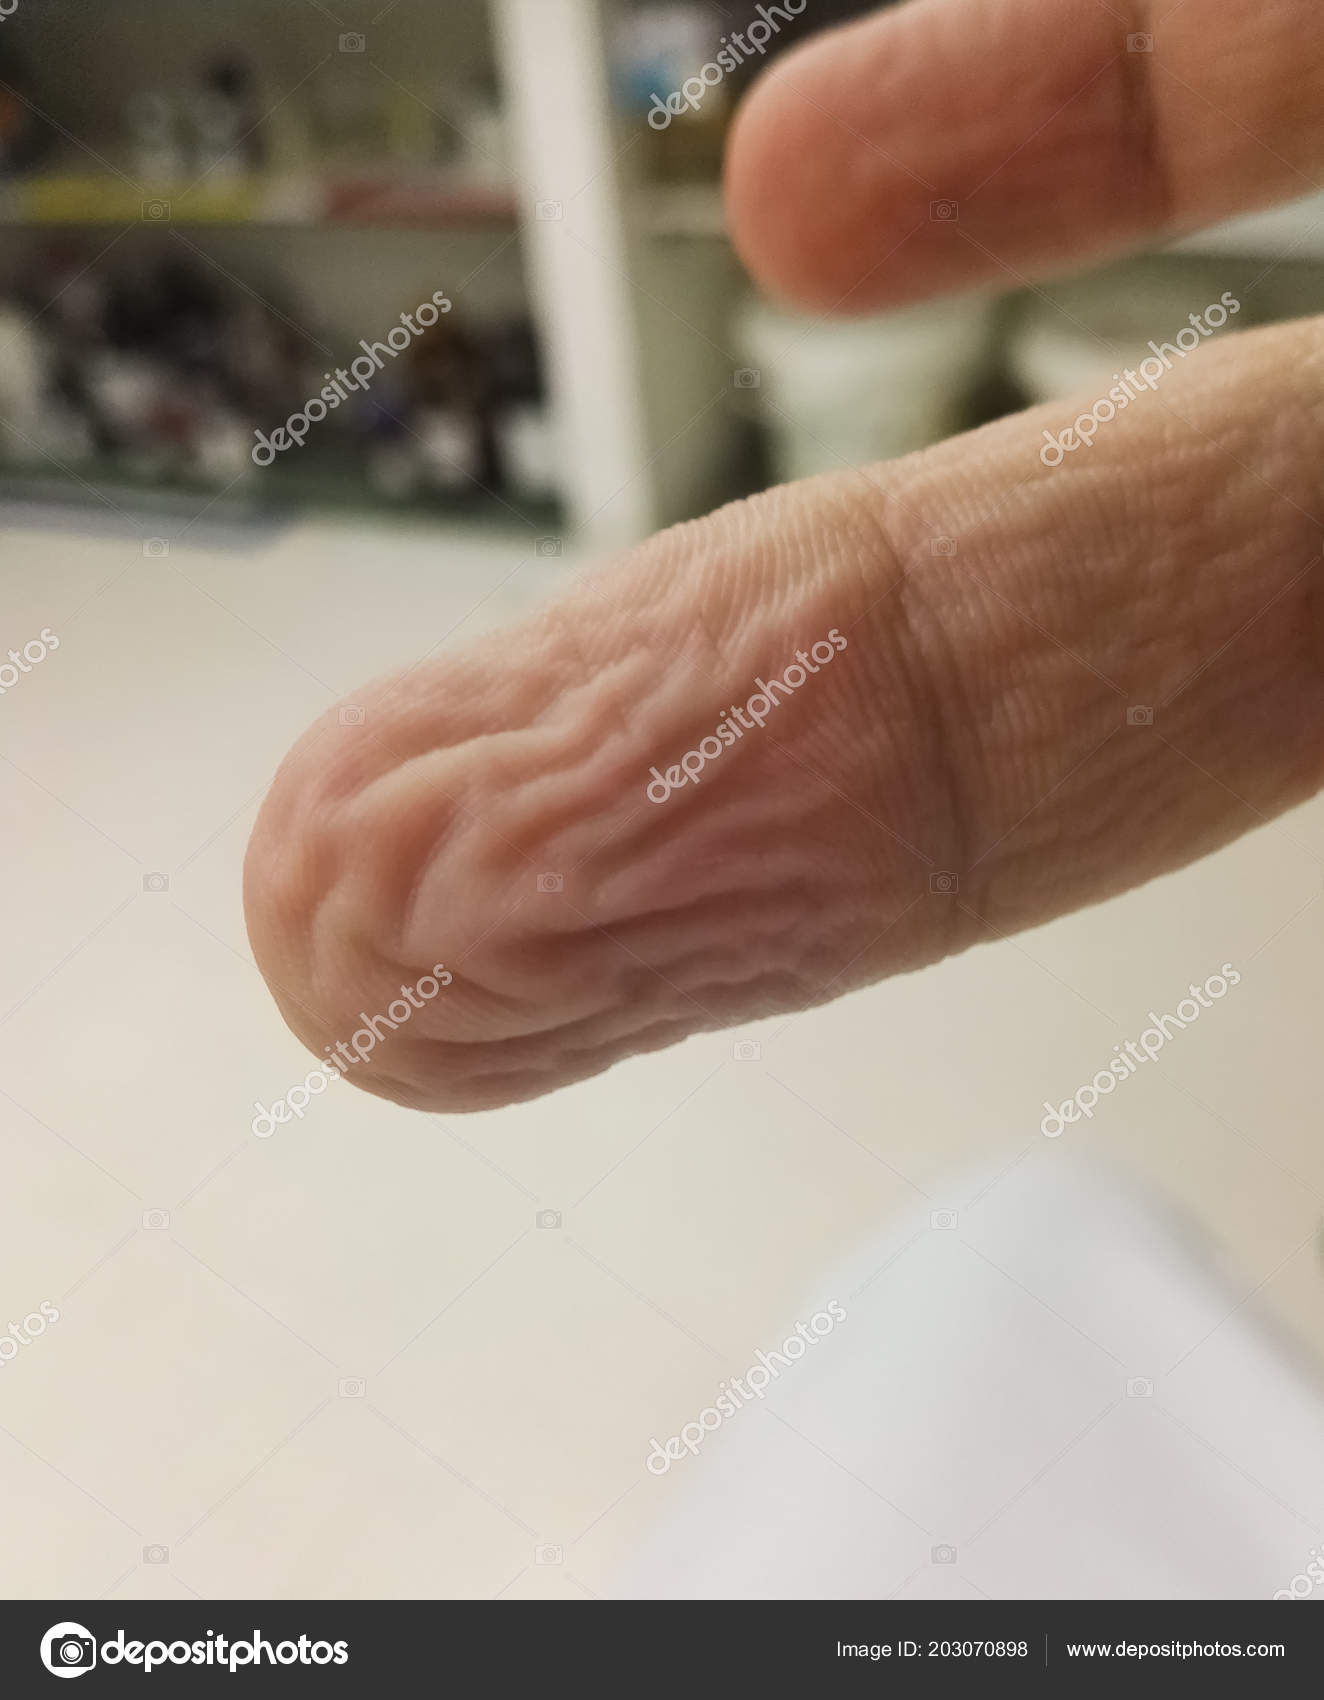 Anatomy Body Finger Human Hand Wrinkled Water Wet Finger Wrinkly